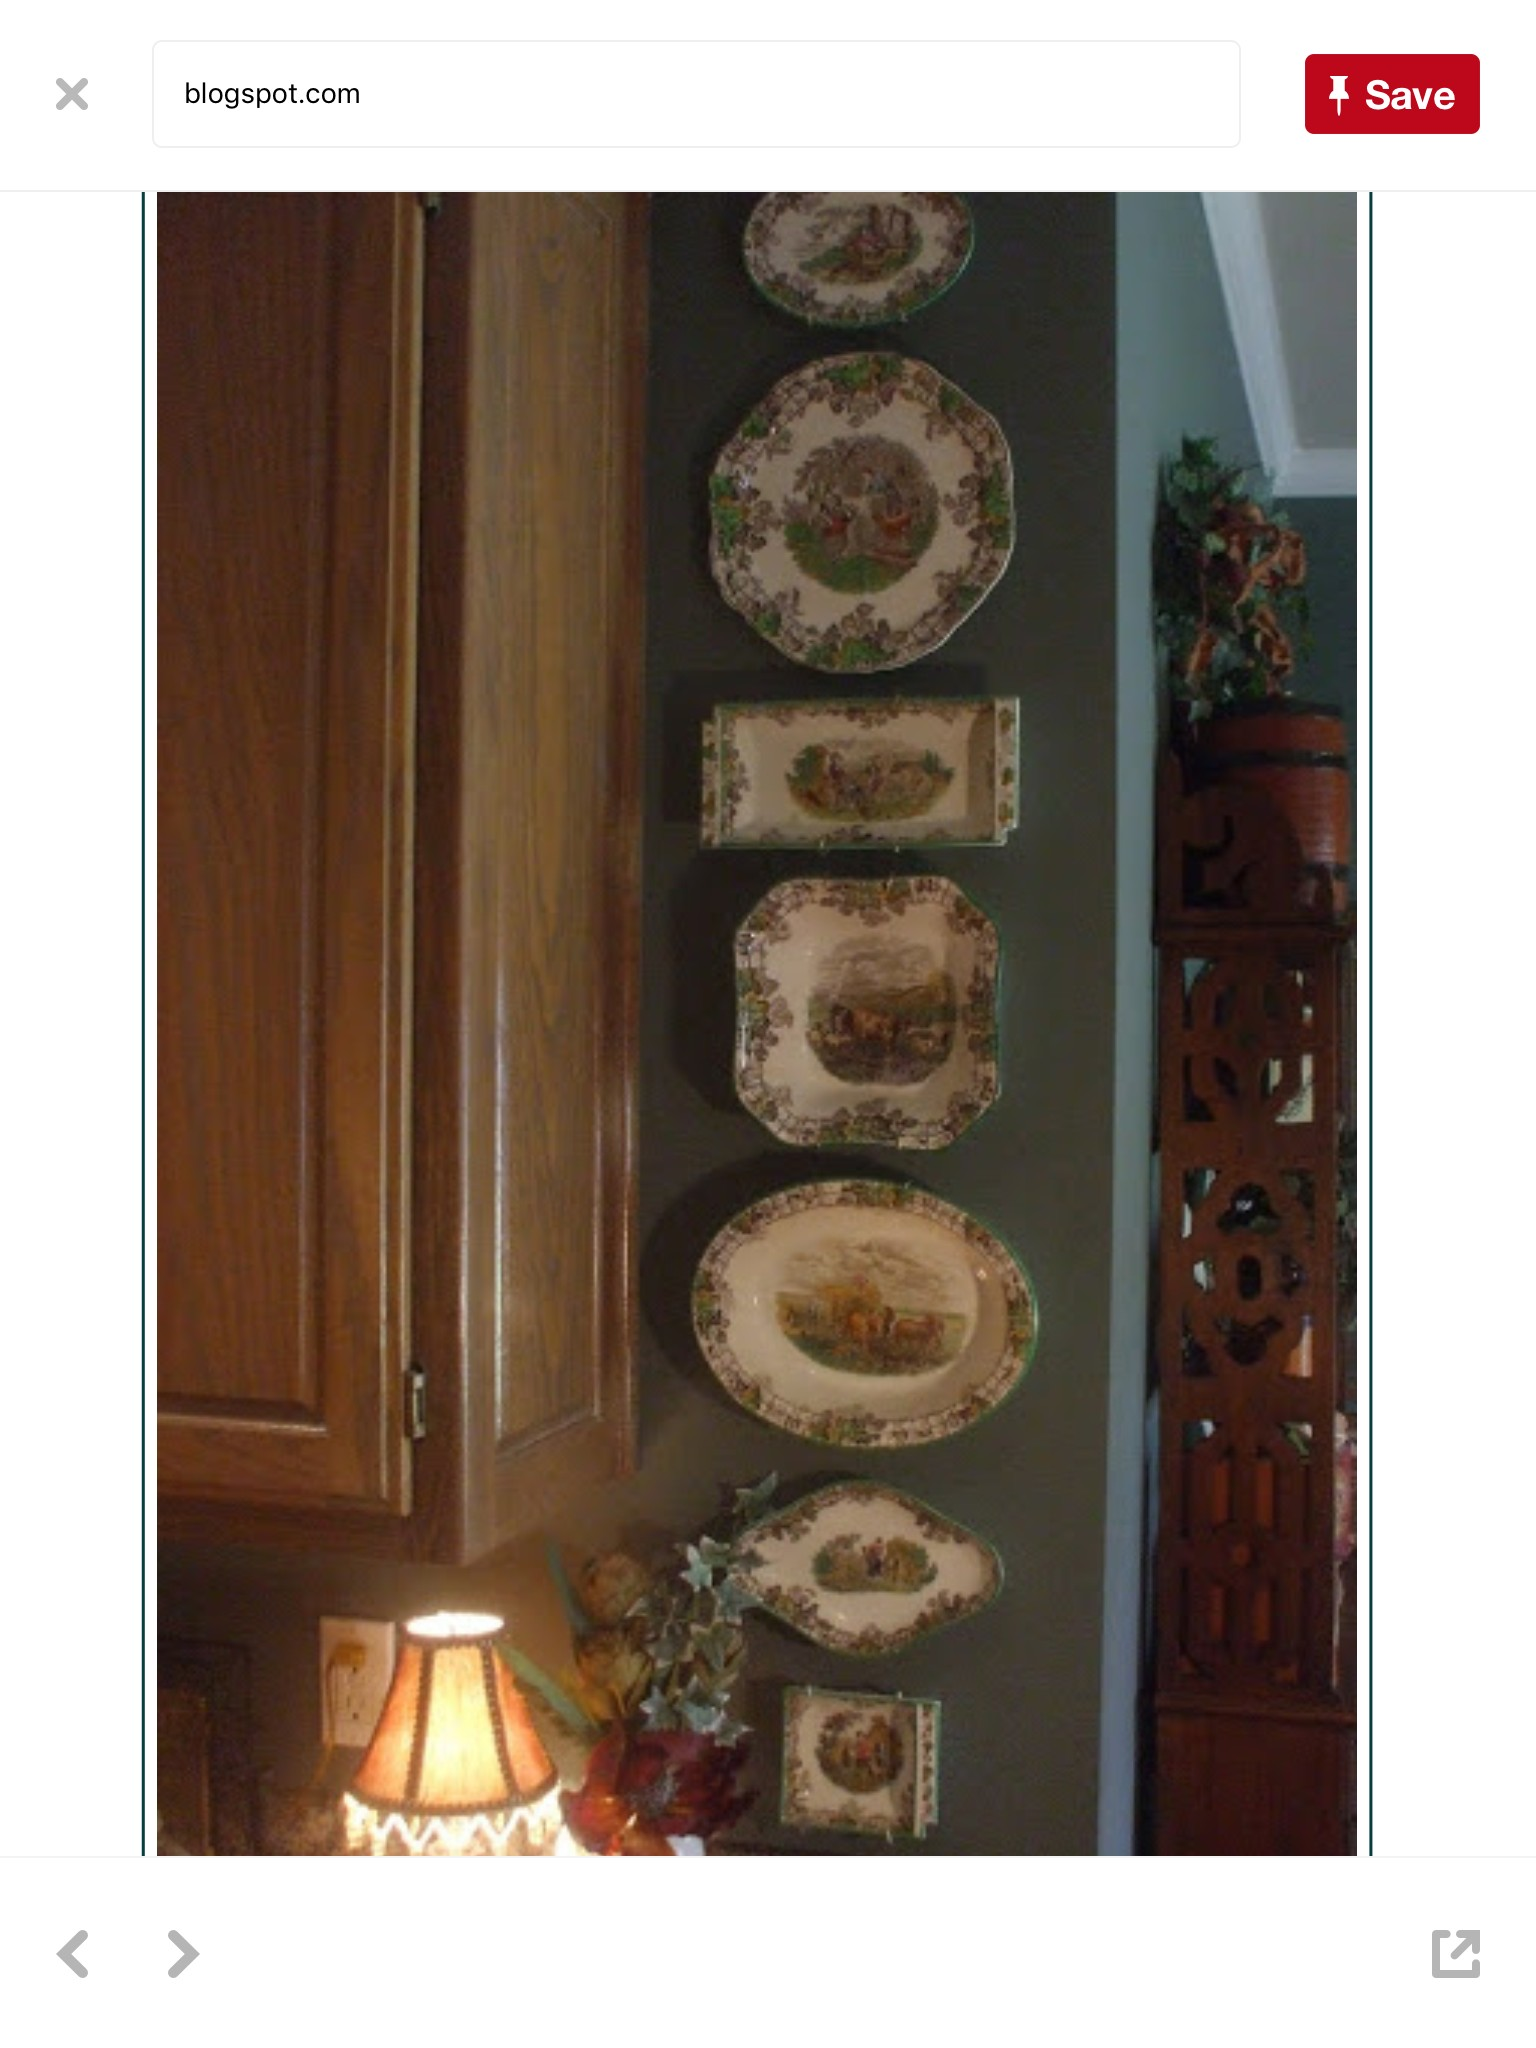 Pin by Cheryl Reid on China Plates and Pretties Pinterest